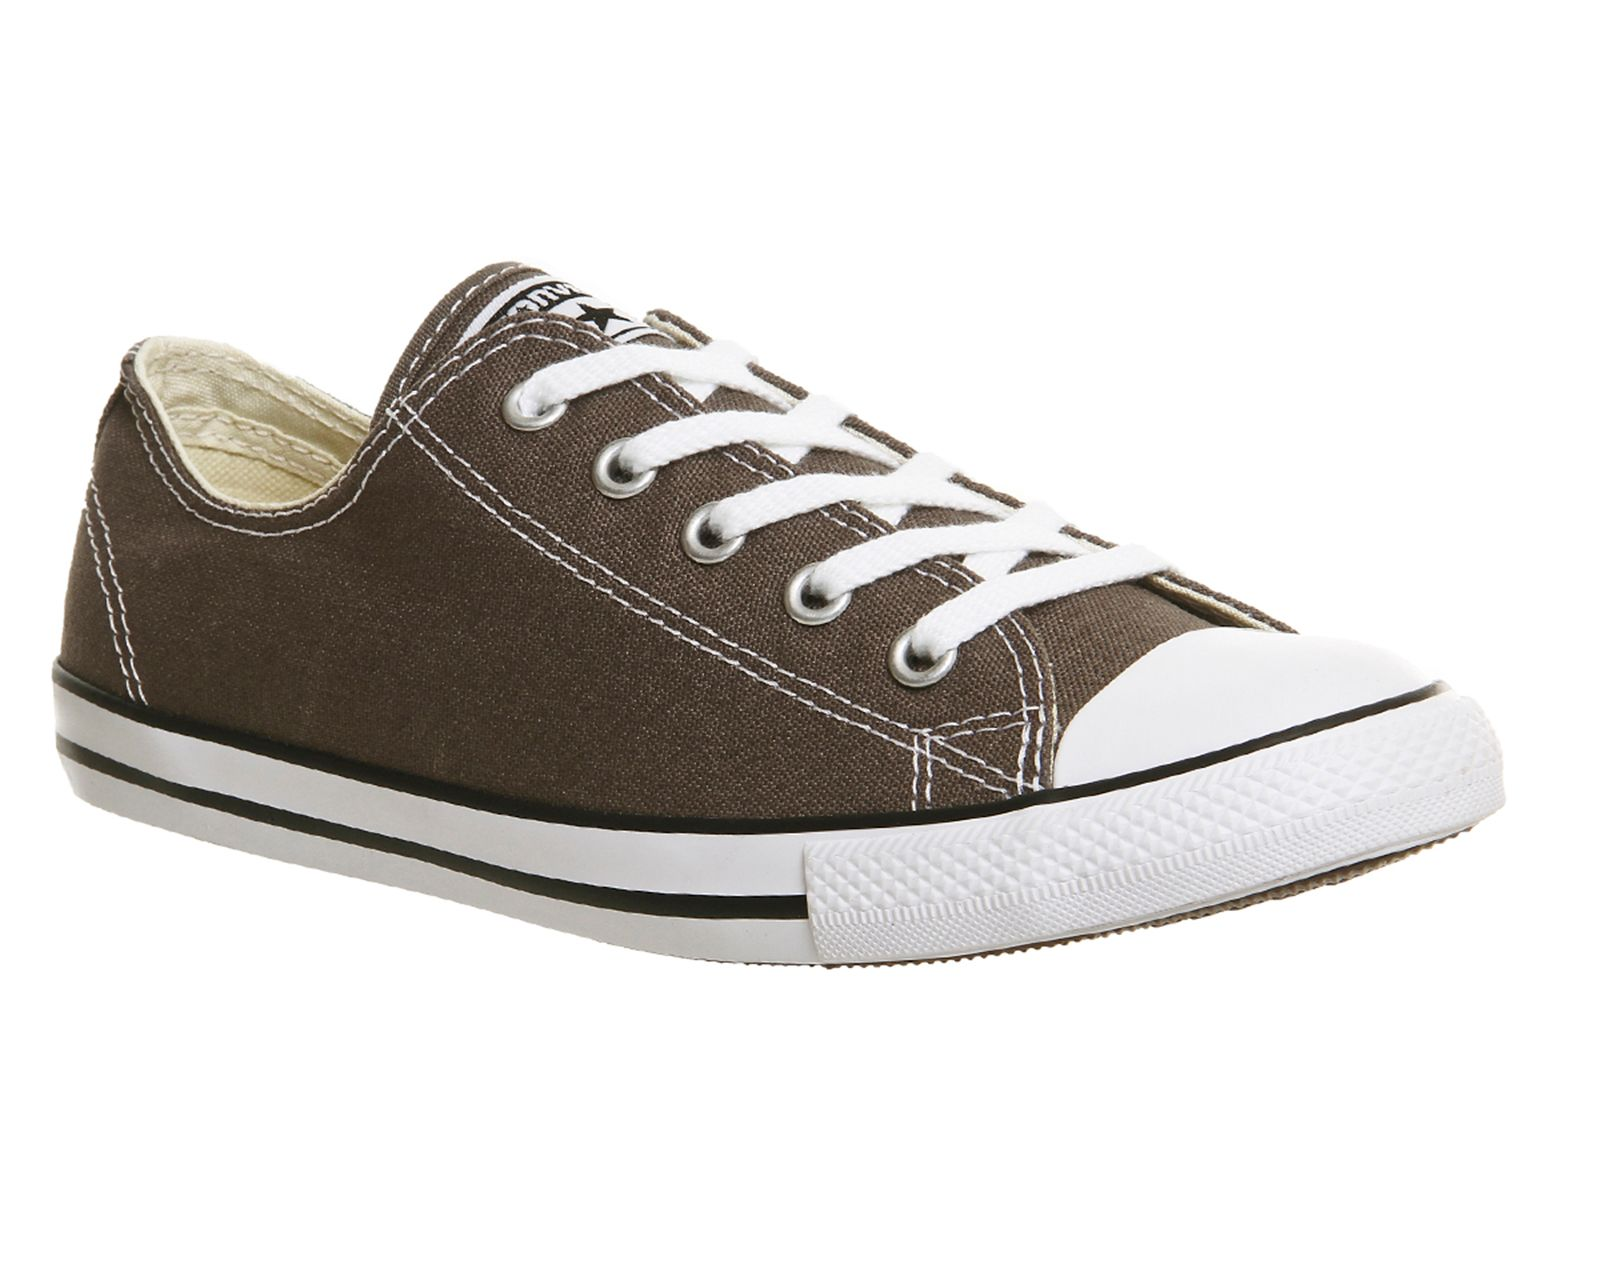 Converse Converse All Star Dainty Trainers, Charcoal